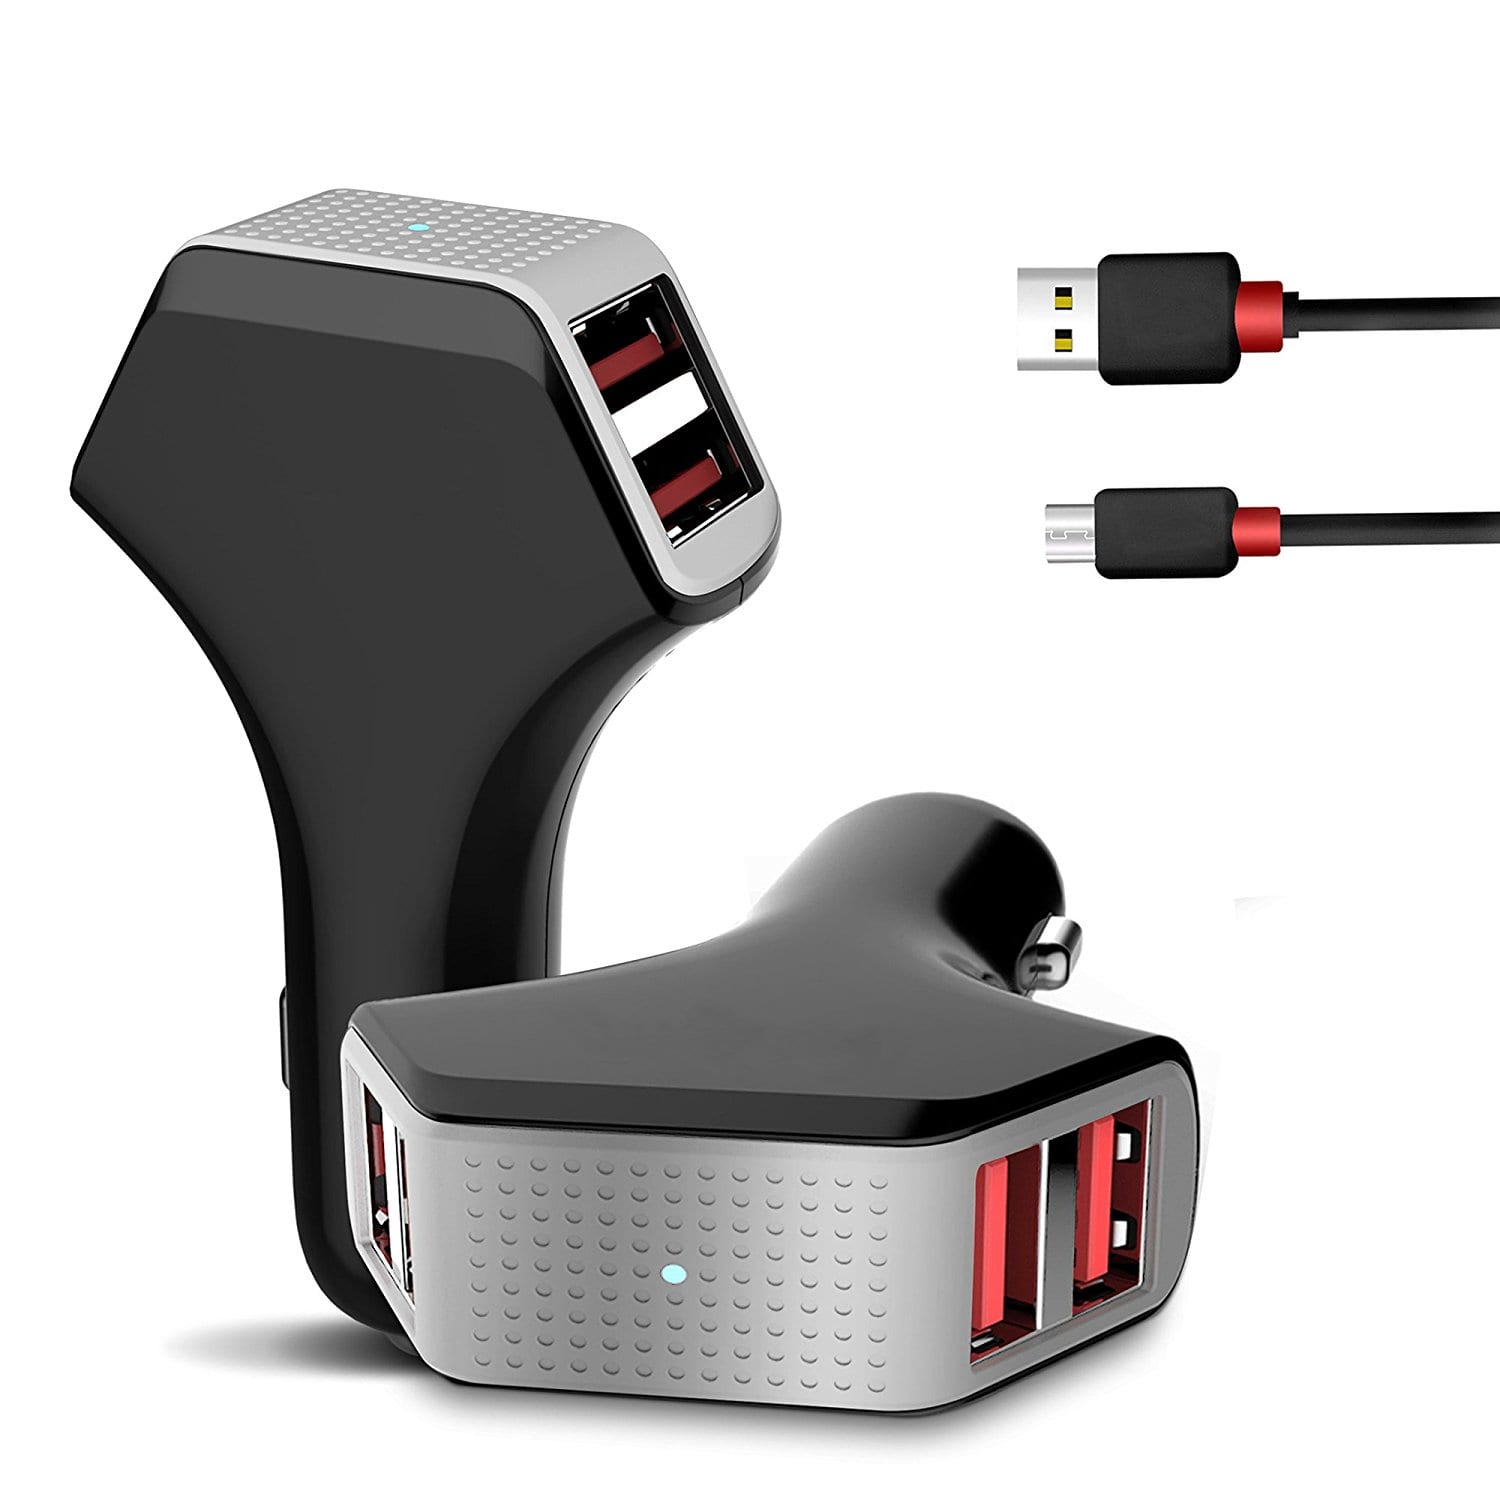 50W/10A 4-Port Fast Car Charger + 5 FT USB Micro Cable $8.80